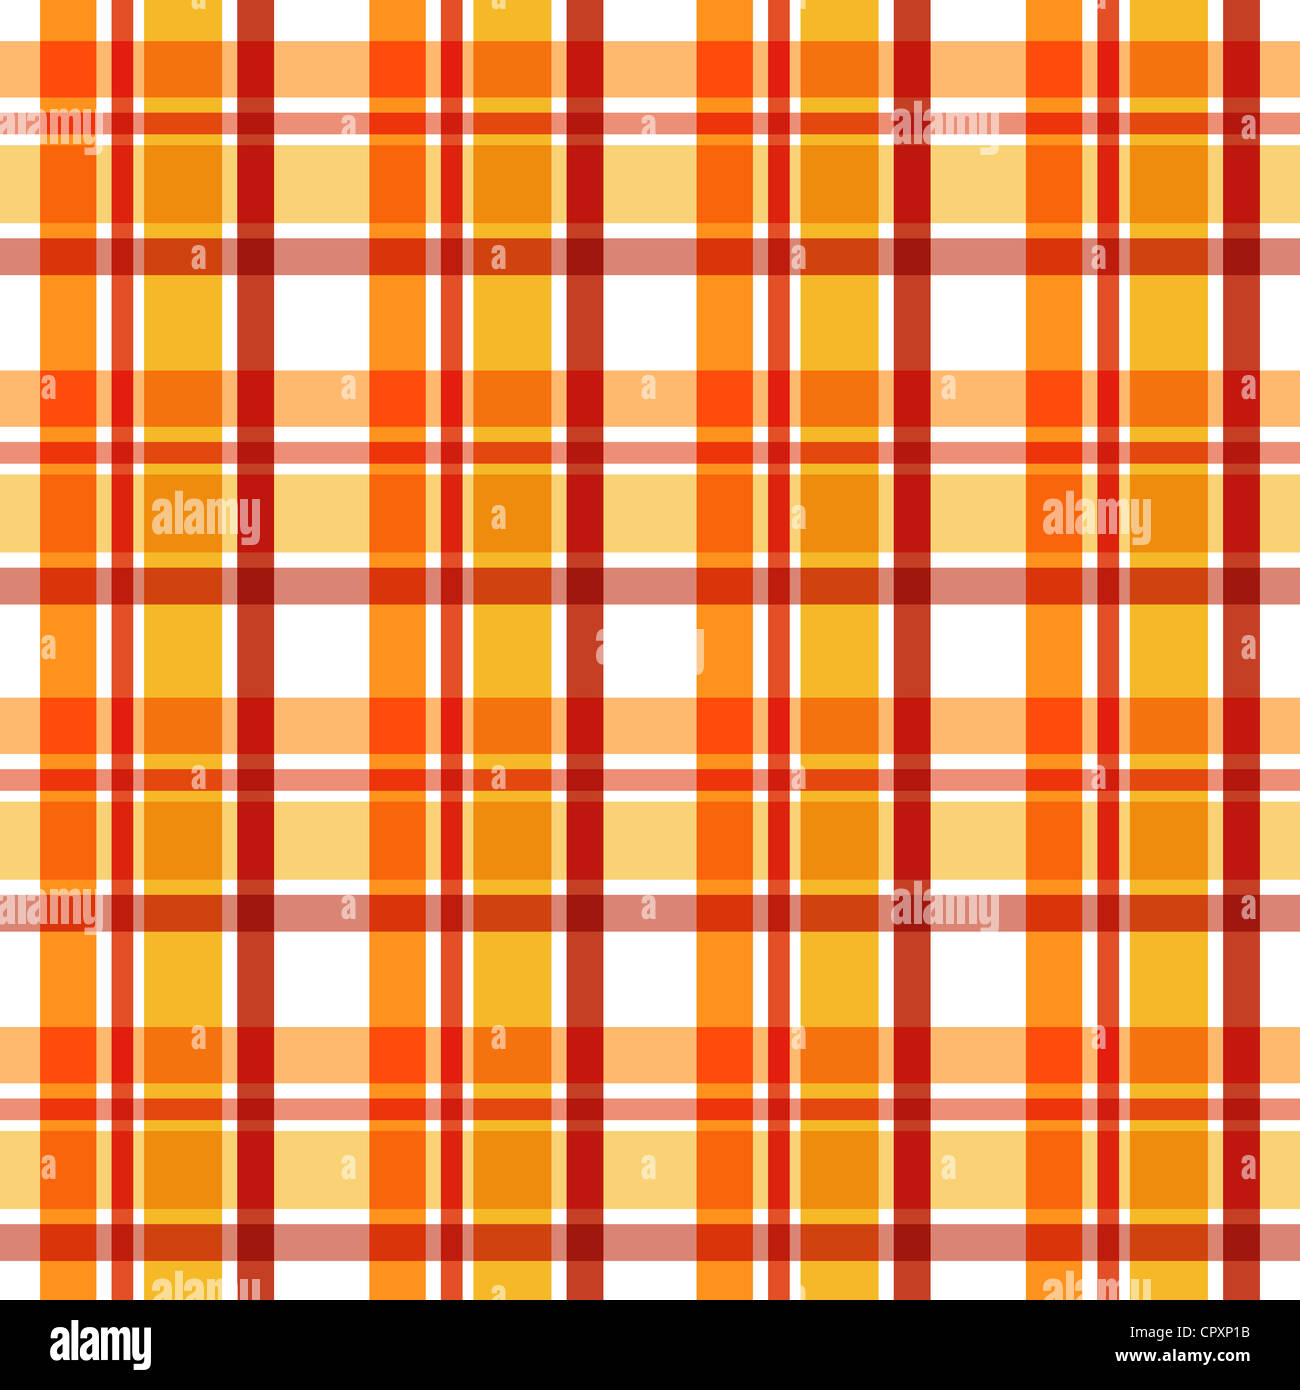 Plaid pattern in orange and brown Stock Photo